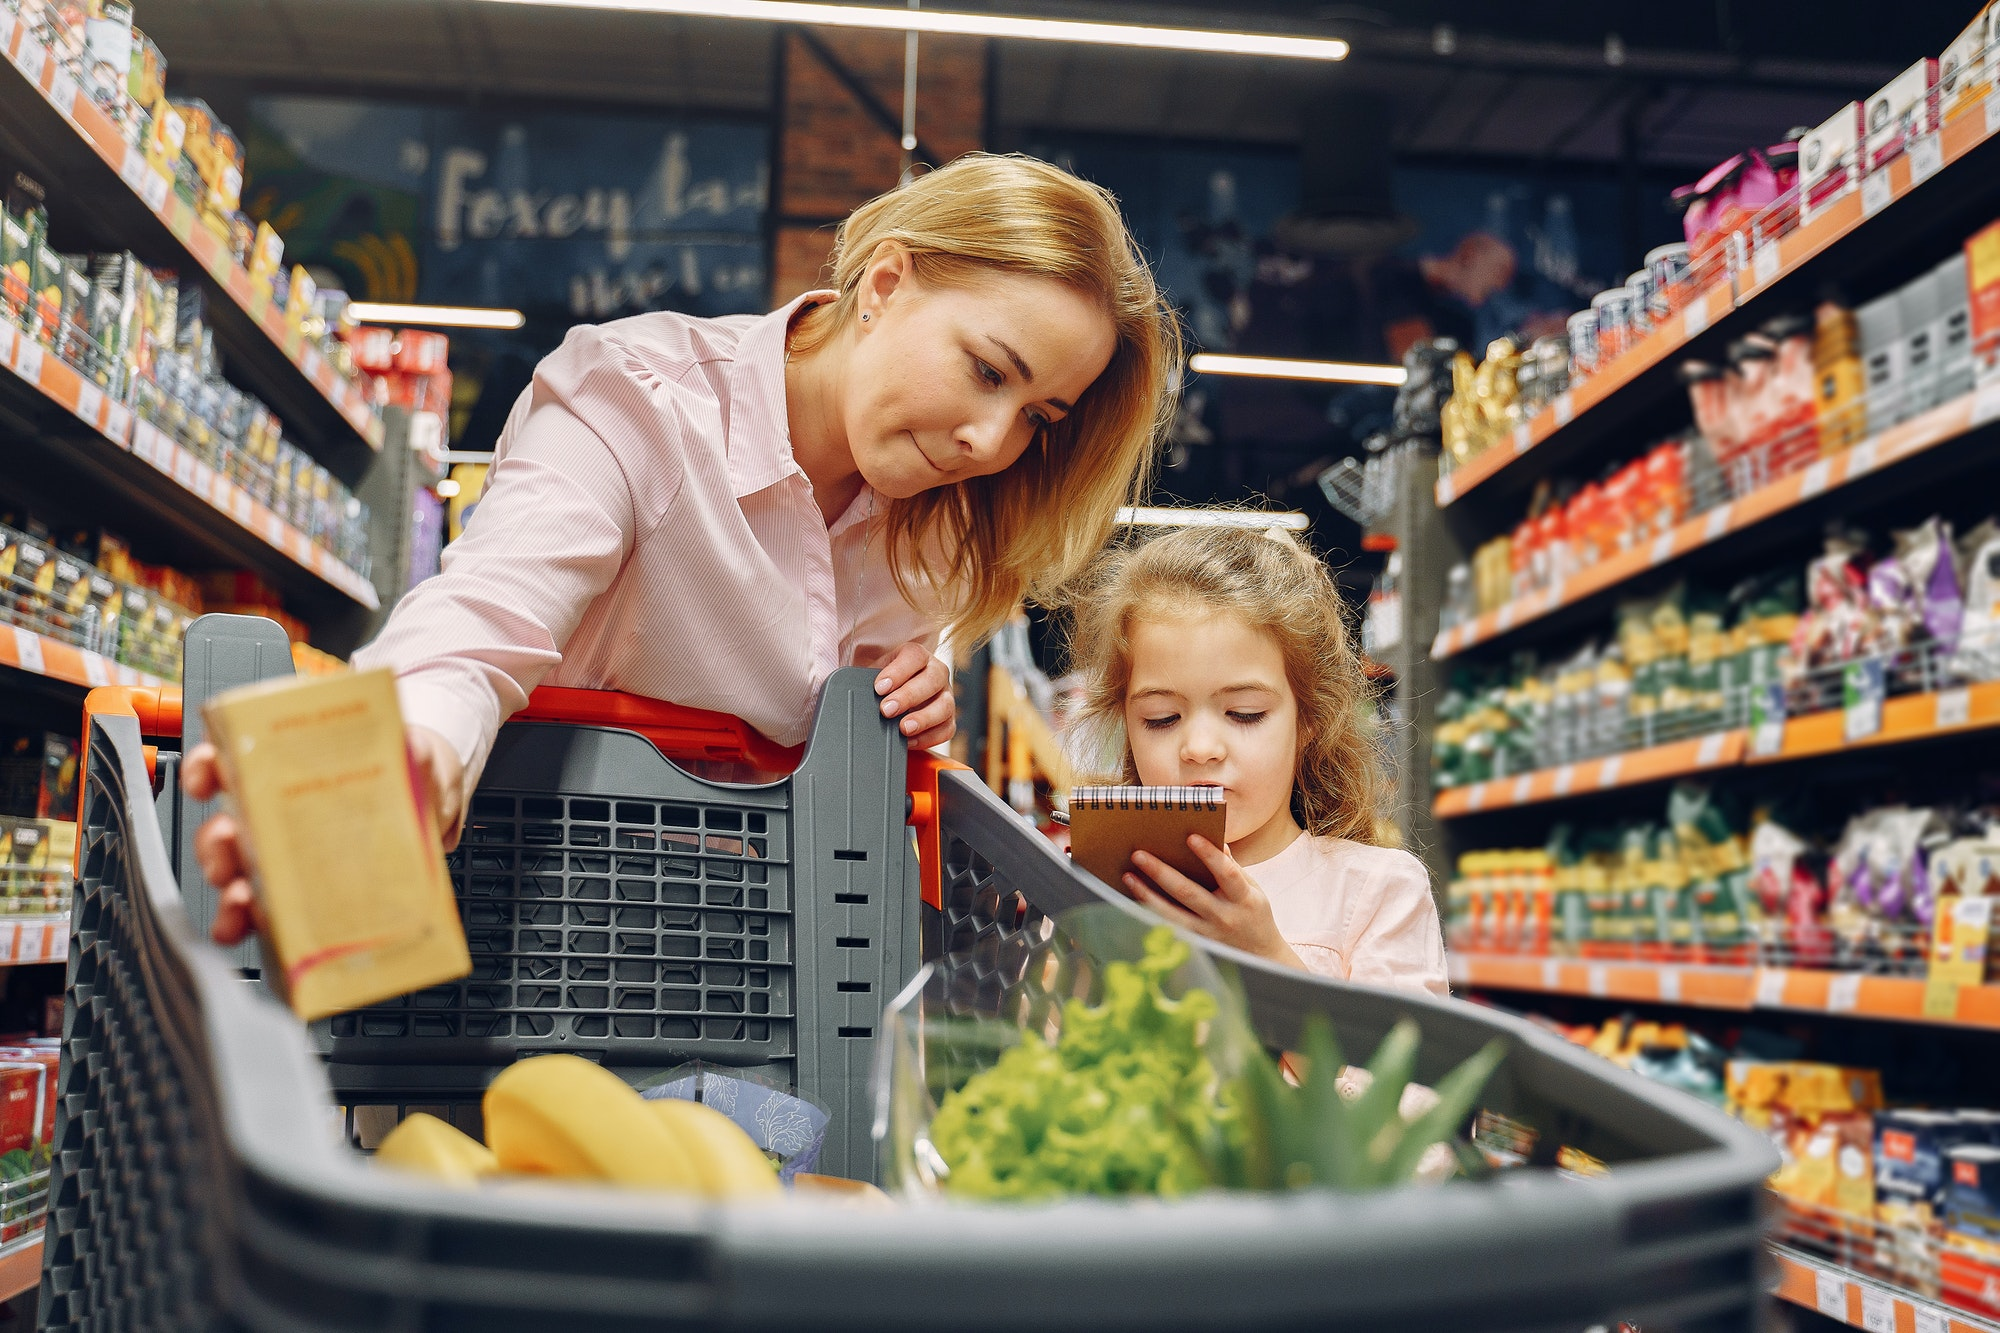 The family buys groceries at the supermarket